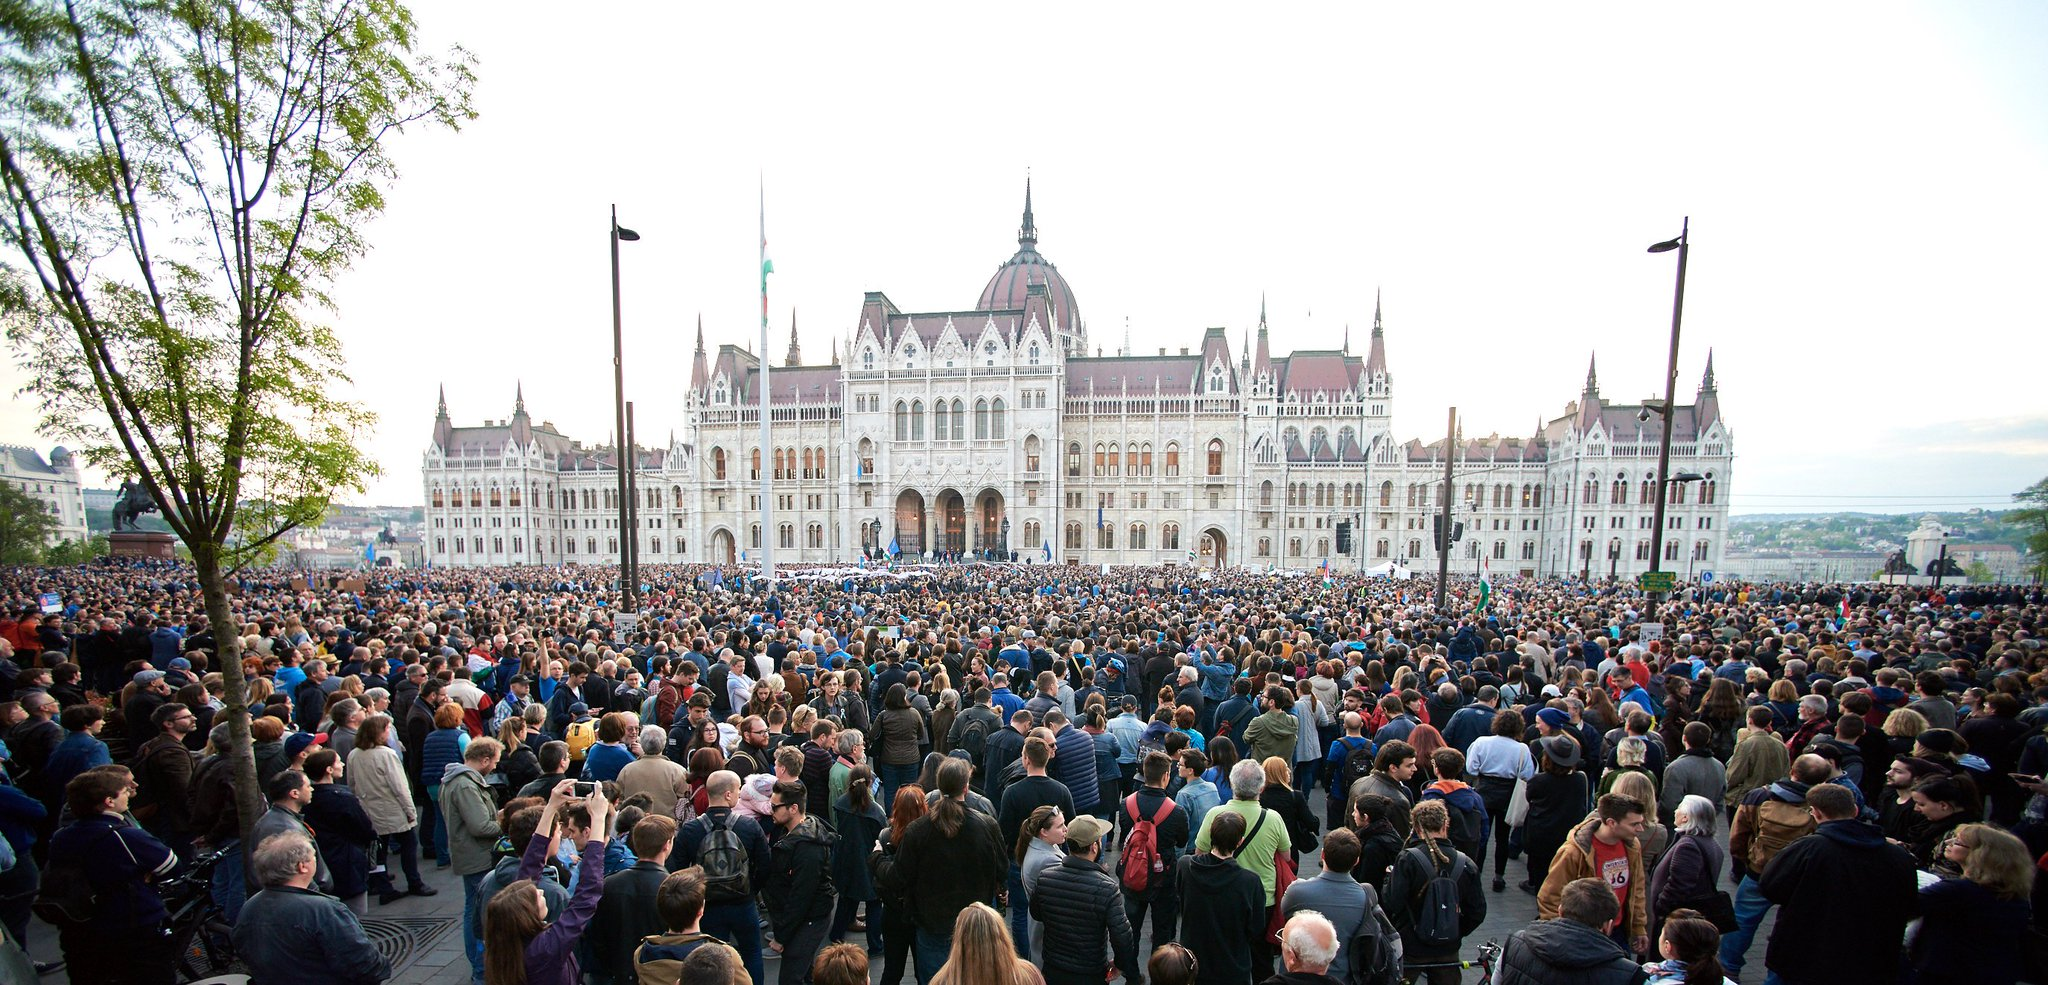 CEU is touched by the support shown in Budapest. Thank you all that marched for academic freedom. #istandwithCEU https://t.co/bEeMoz0fsg https://t.co/zTDR9sQD7L